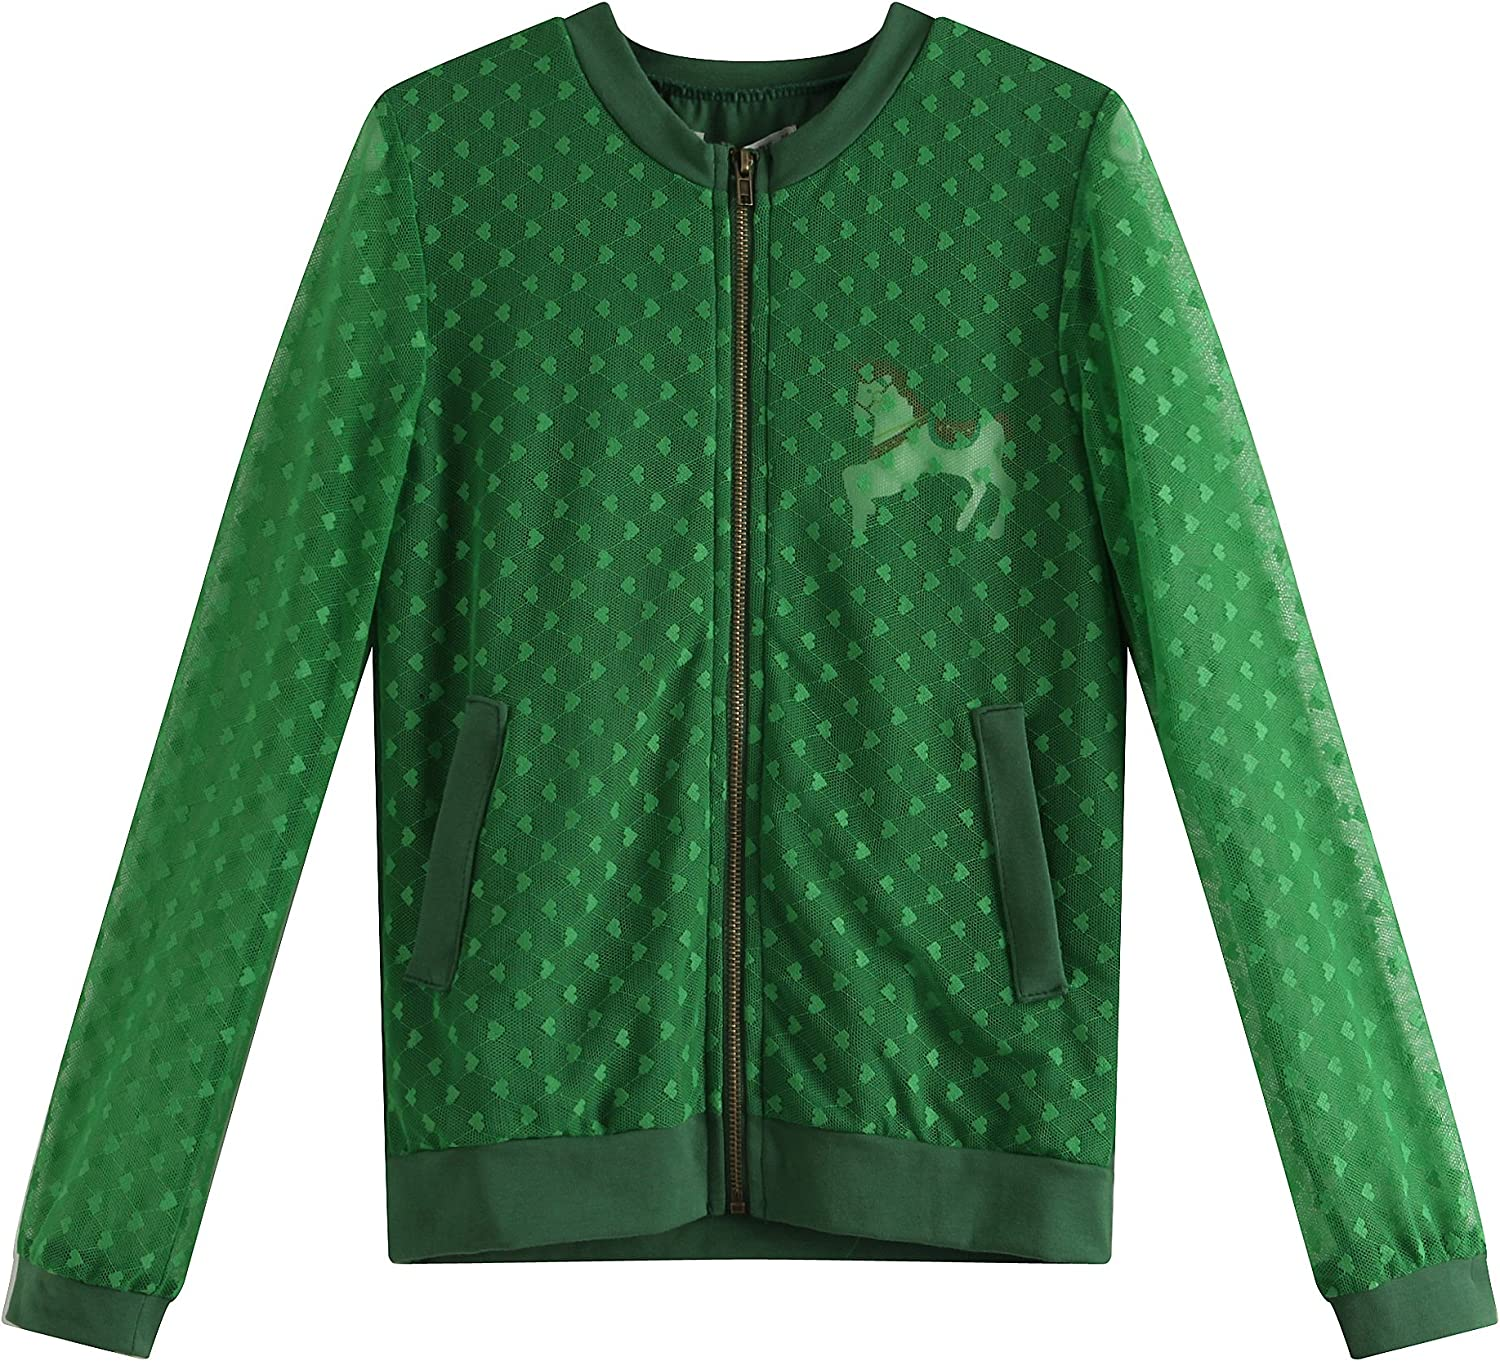 Richie House Girls' Leisure Coat with Lace Size 2-8 RH1868